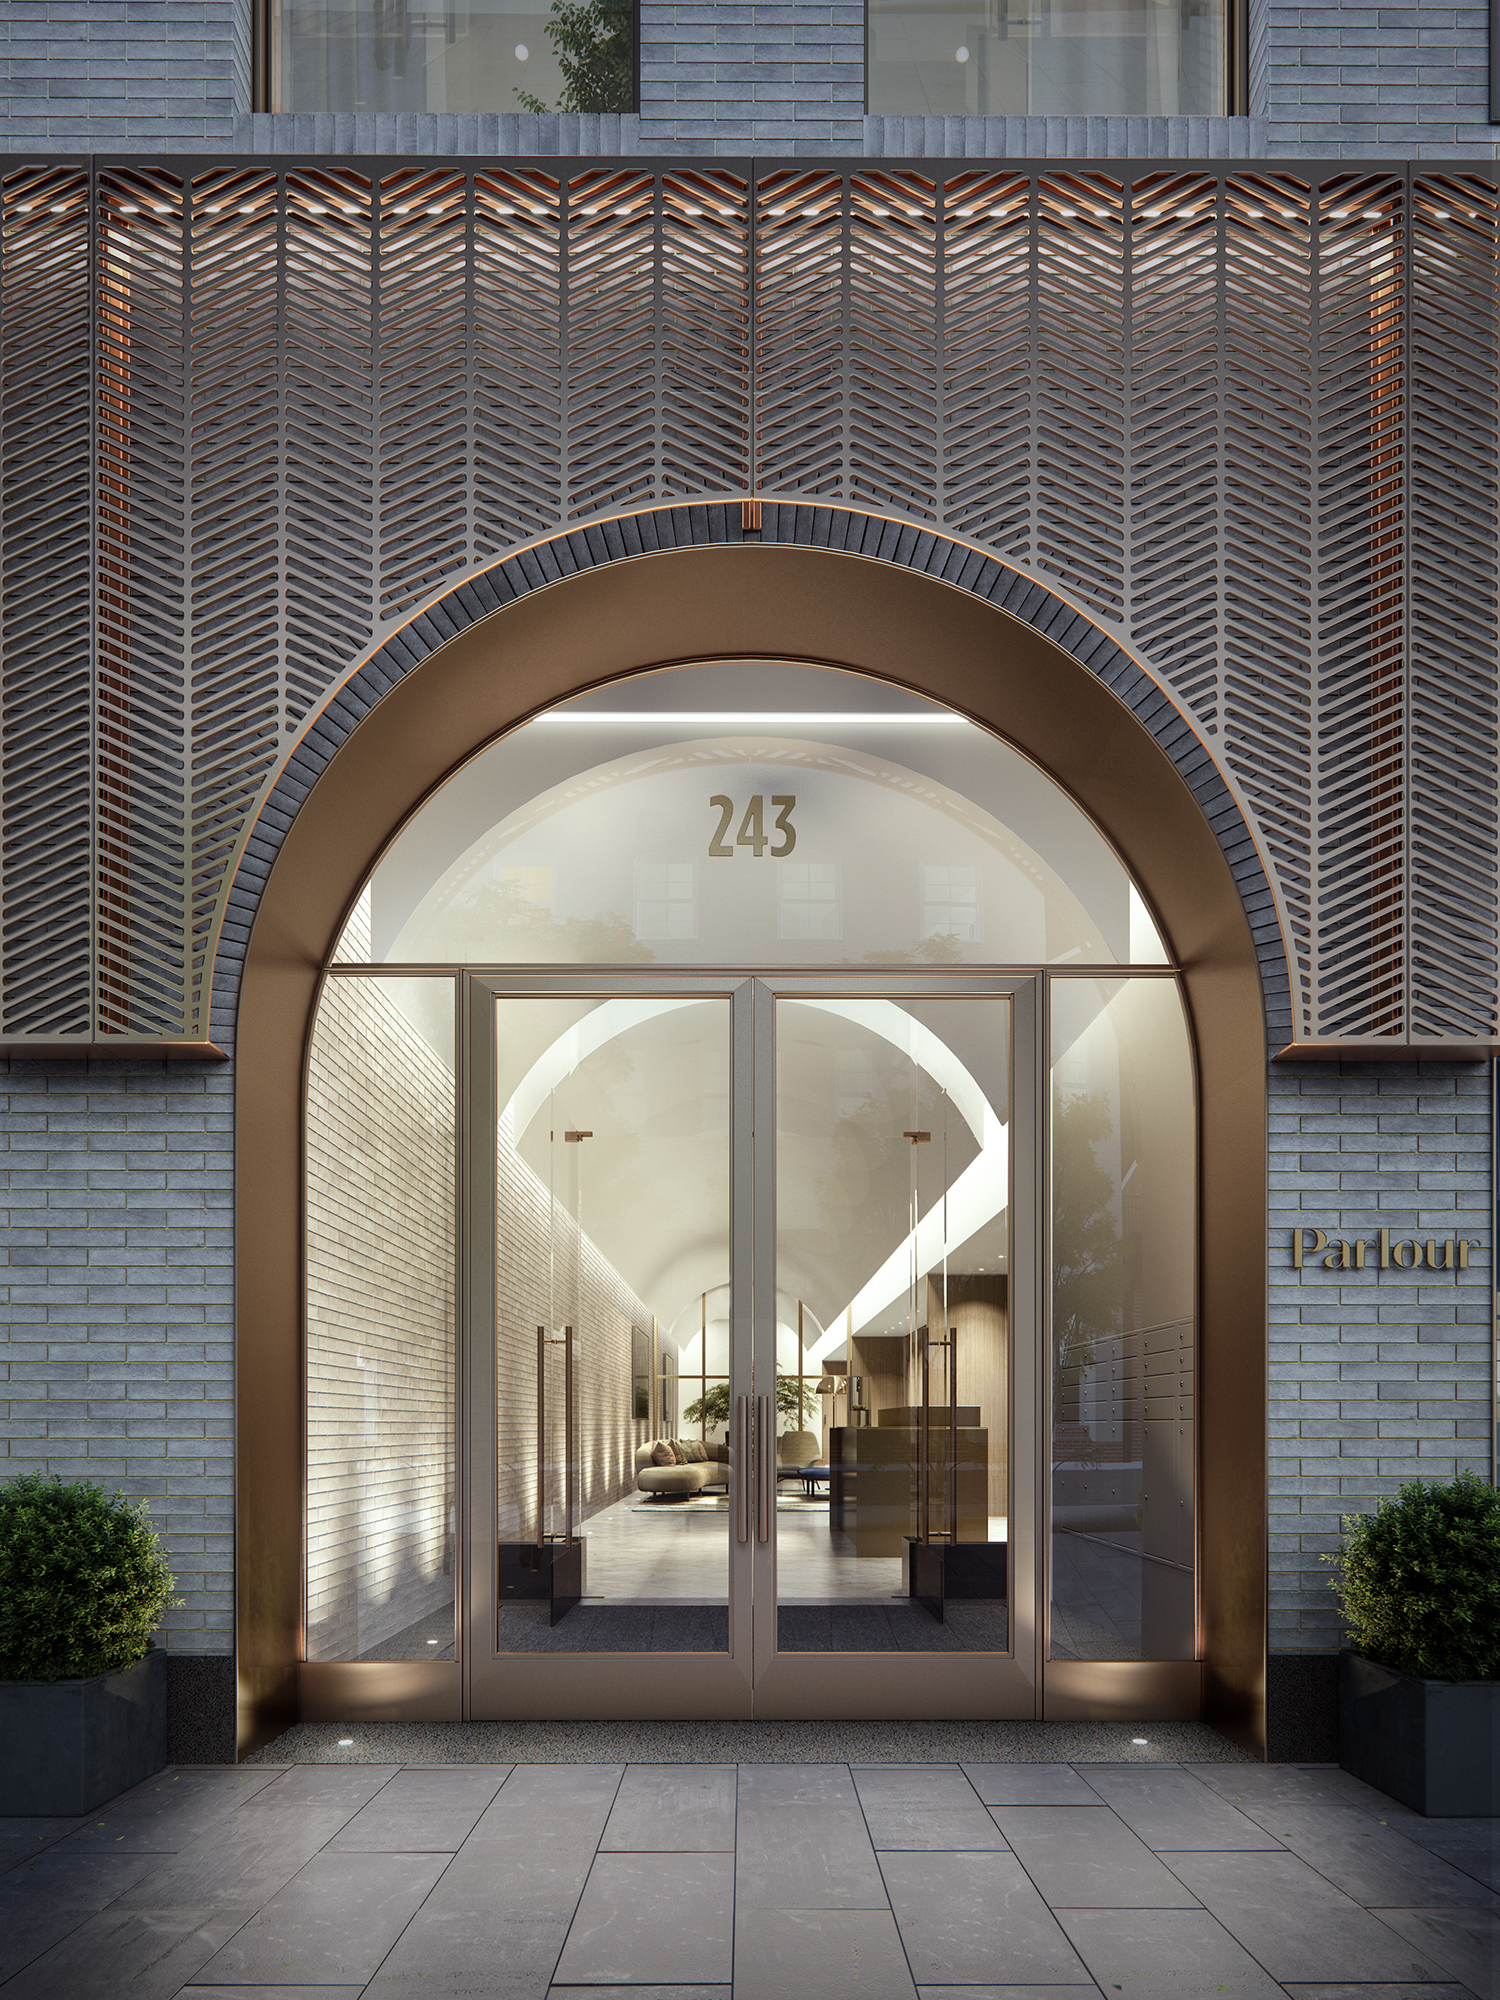 Parlour Brooklyn Exterior Entrance Rendering